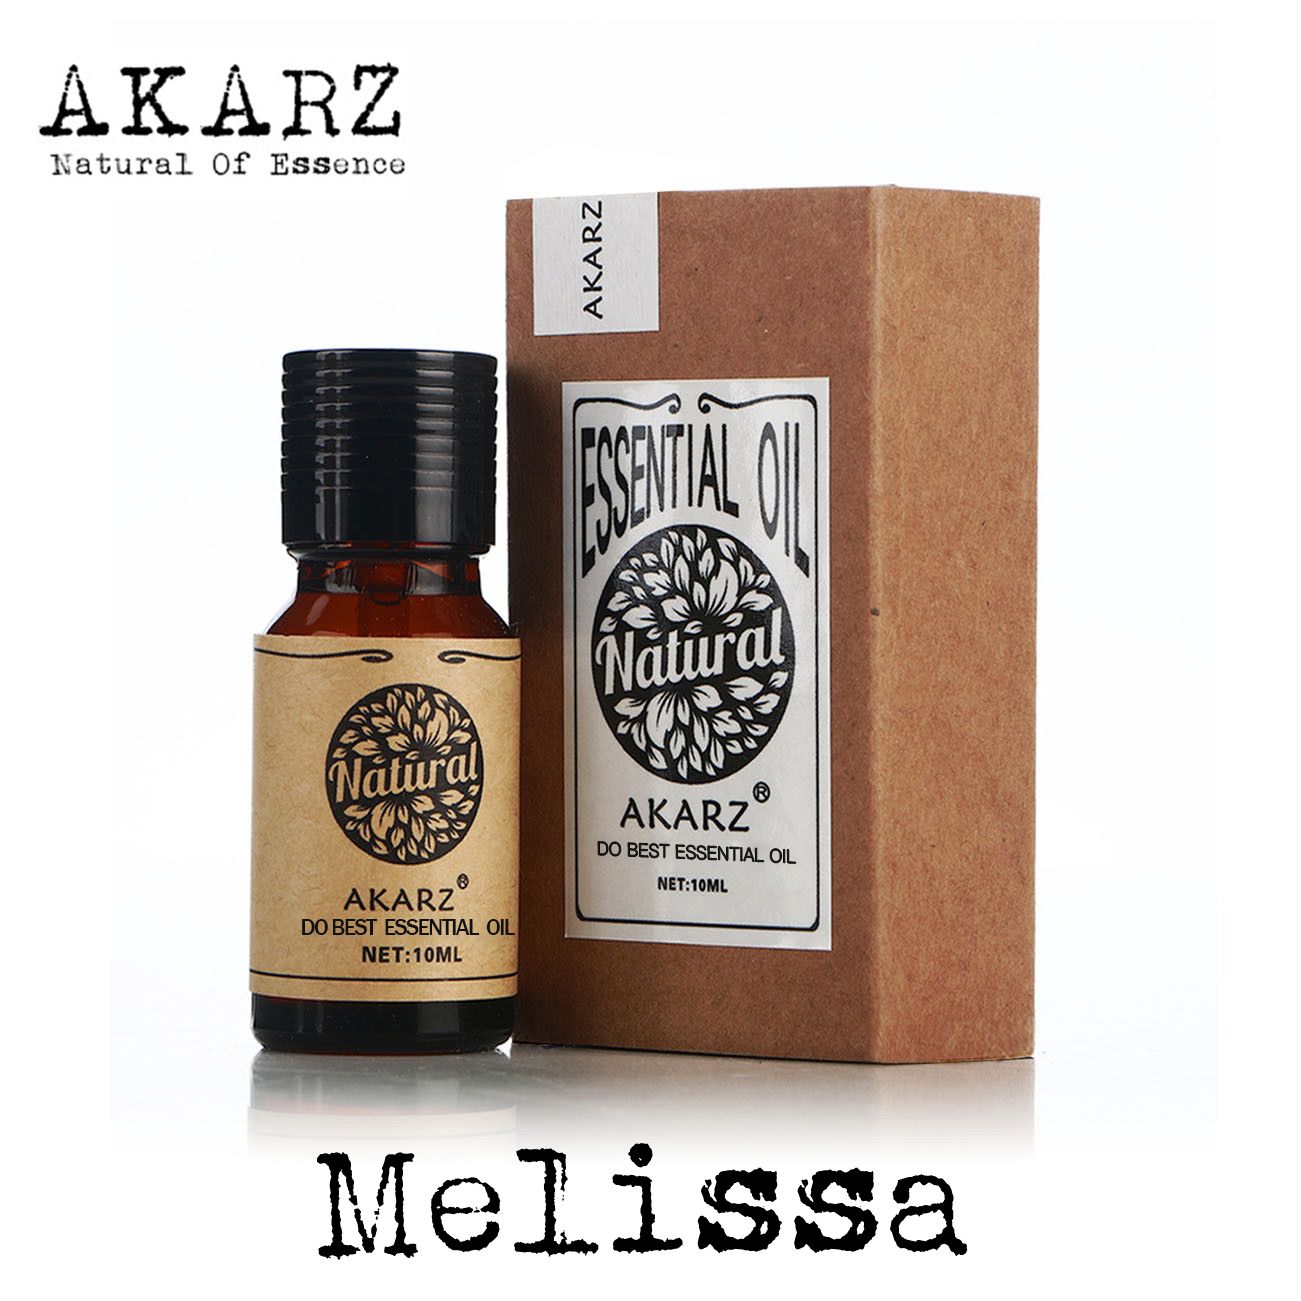 AKARZ Famous brand natural Melissa essential oil Skin healthy luster Cure eczema Lowering blood pressure Melissa oilAKARZ Famous brand natural Melissa essential oil Skin healthy luster Cure eczema Lowering blood pressure Melissa oil